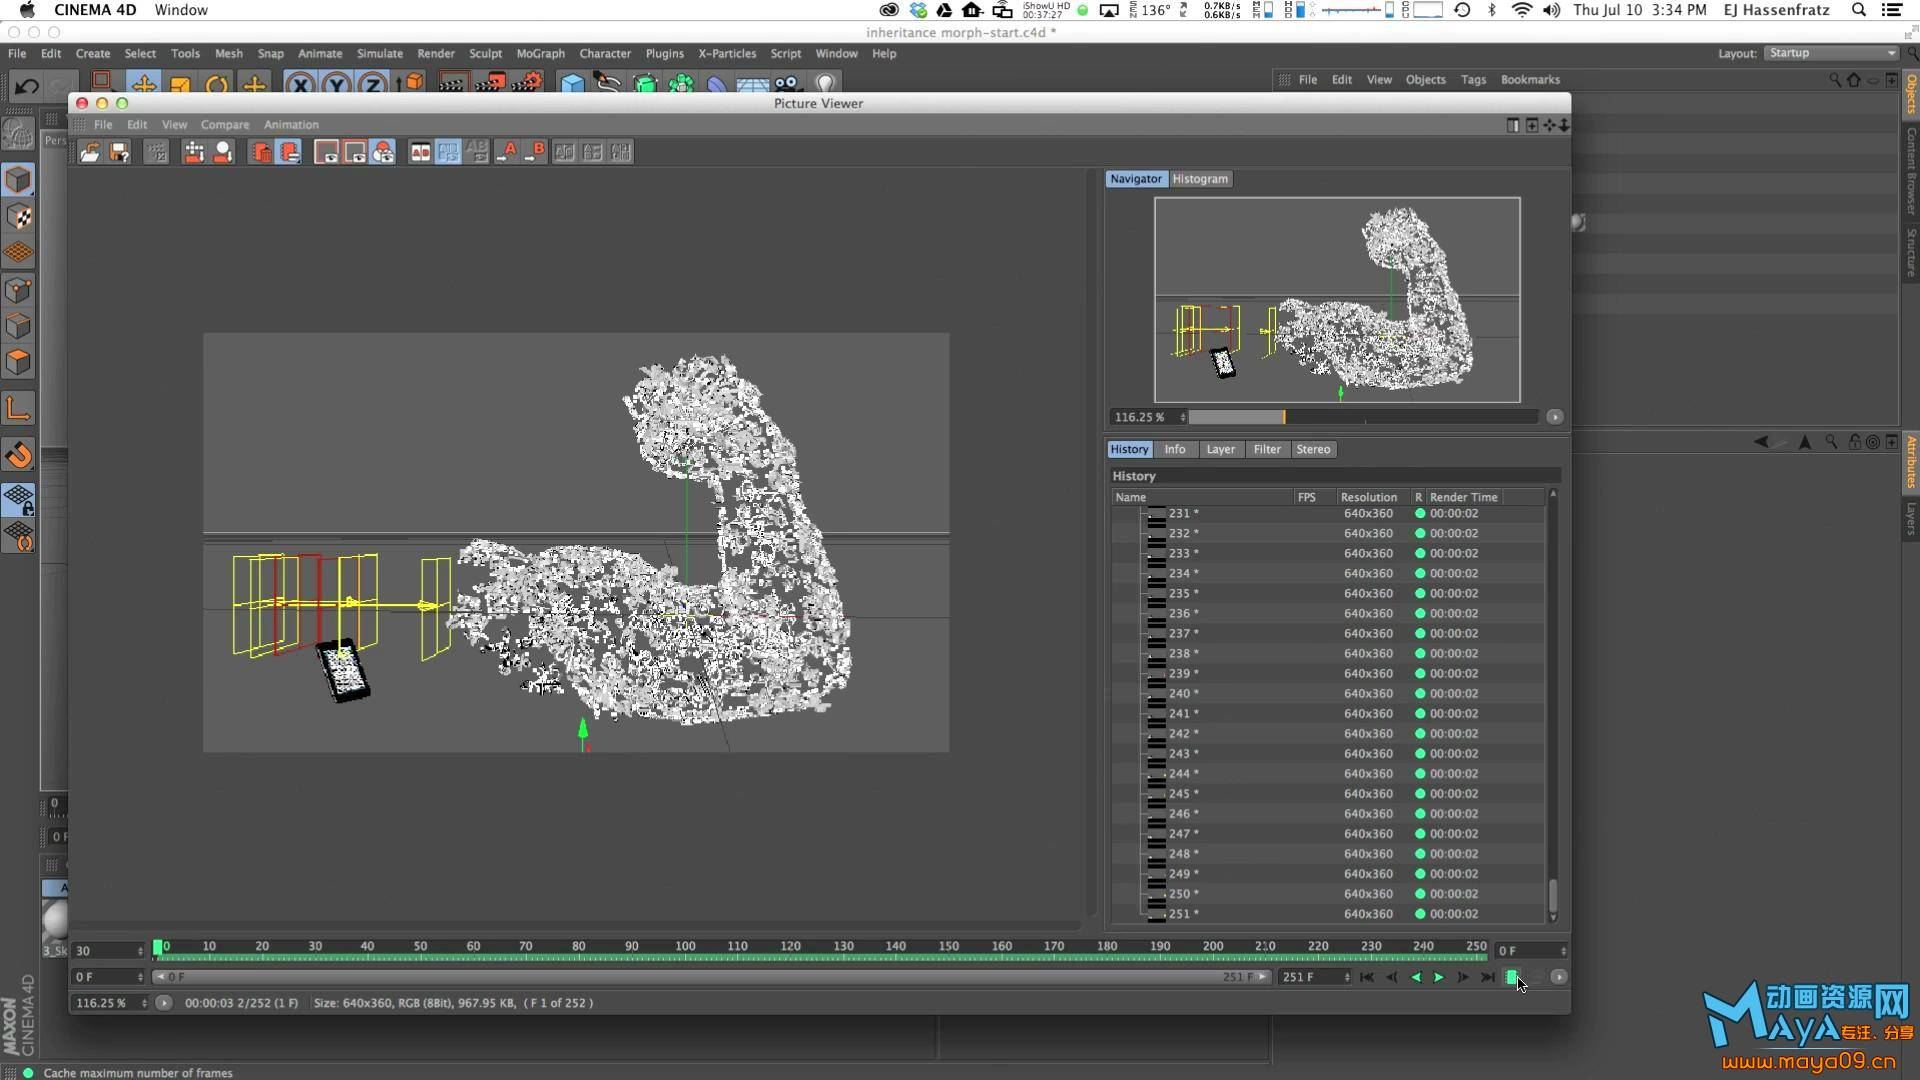 Cinema 4D – Creating Particle Morph using MoGraph, Effectors and Dynamics Tutor.jpg